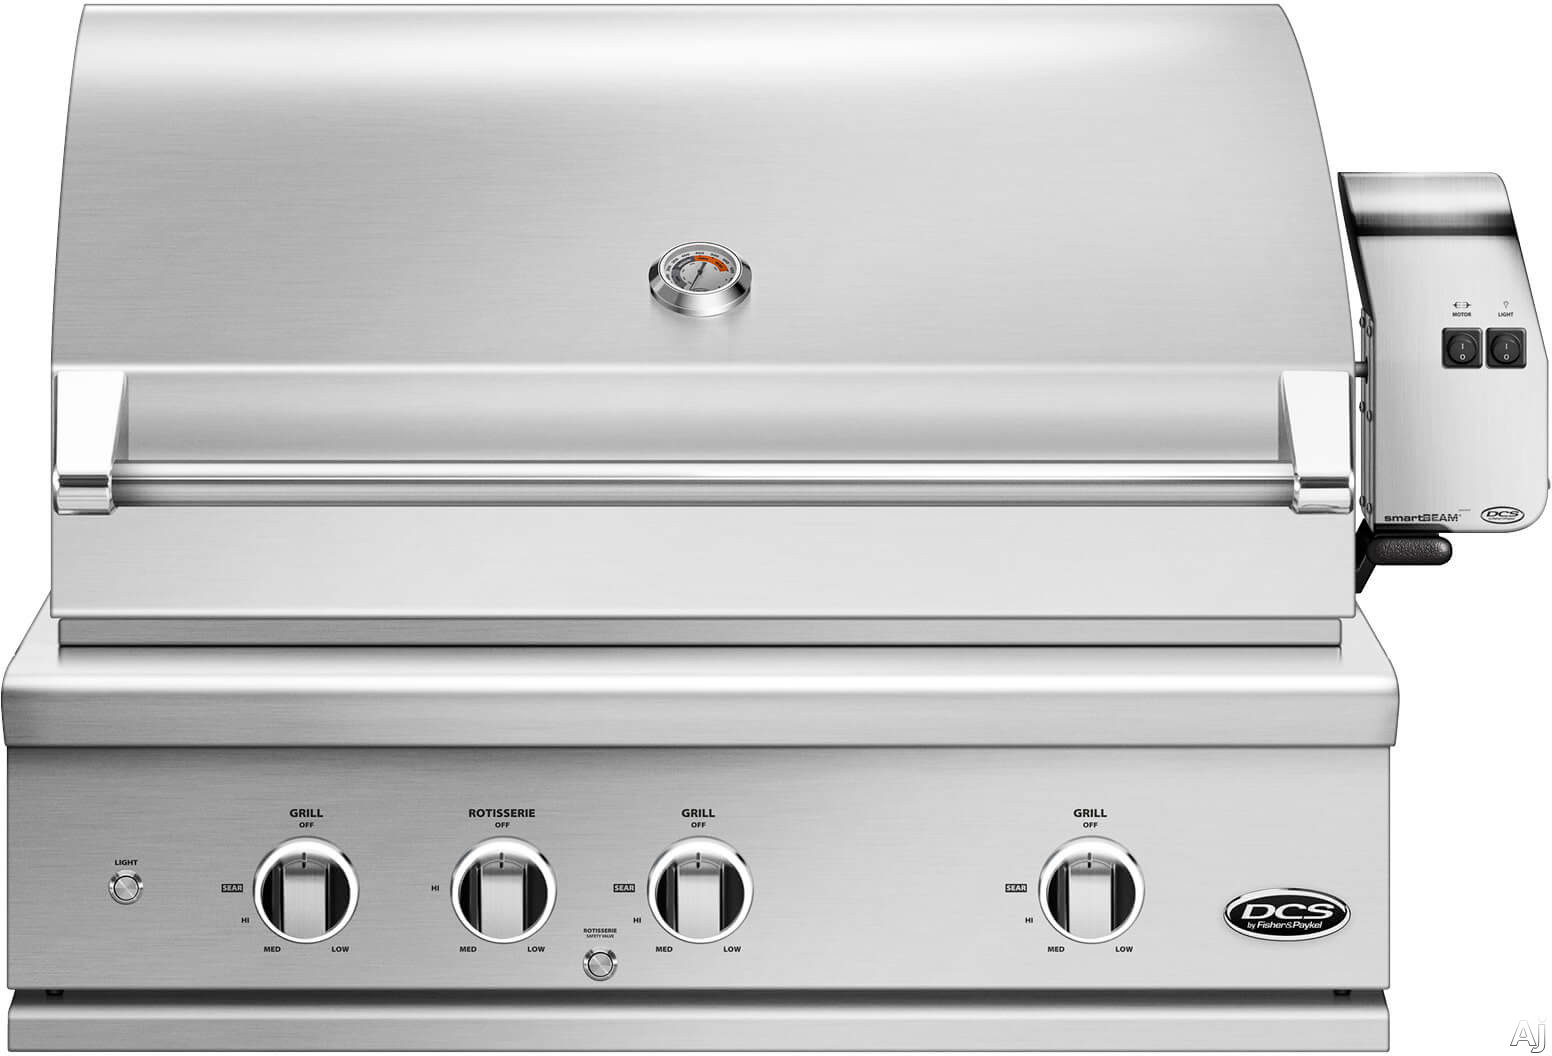 DCS Series 9 Evolution BE136RCL 36 Inch Built-In Grill with Infrared Rotisserie, Charcoal Smoker Tray, Extra Cooking Area, Easy Lift Hood, Intuitive Lighting and Rack & Tool Storage